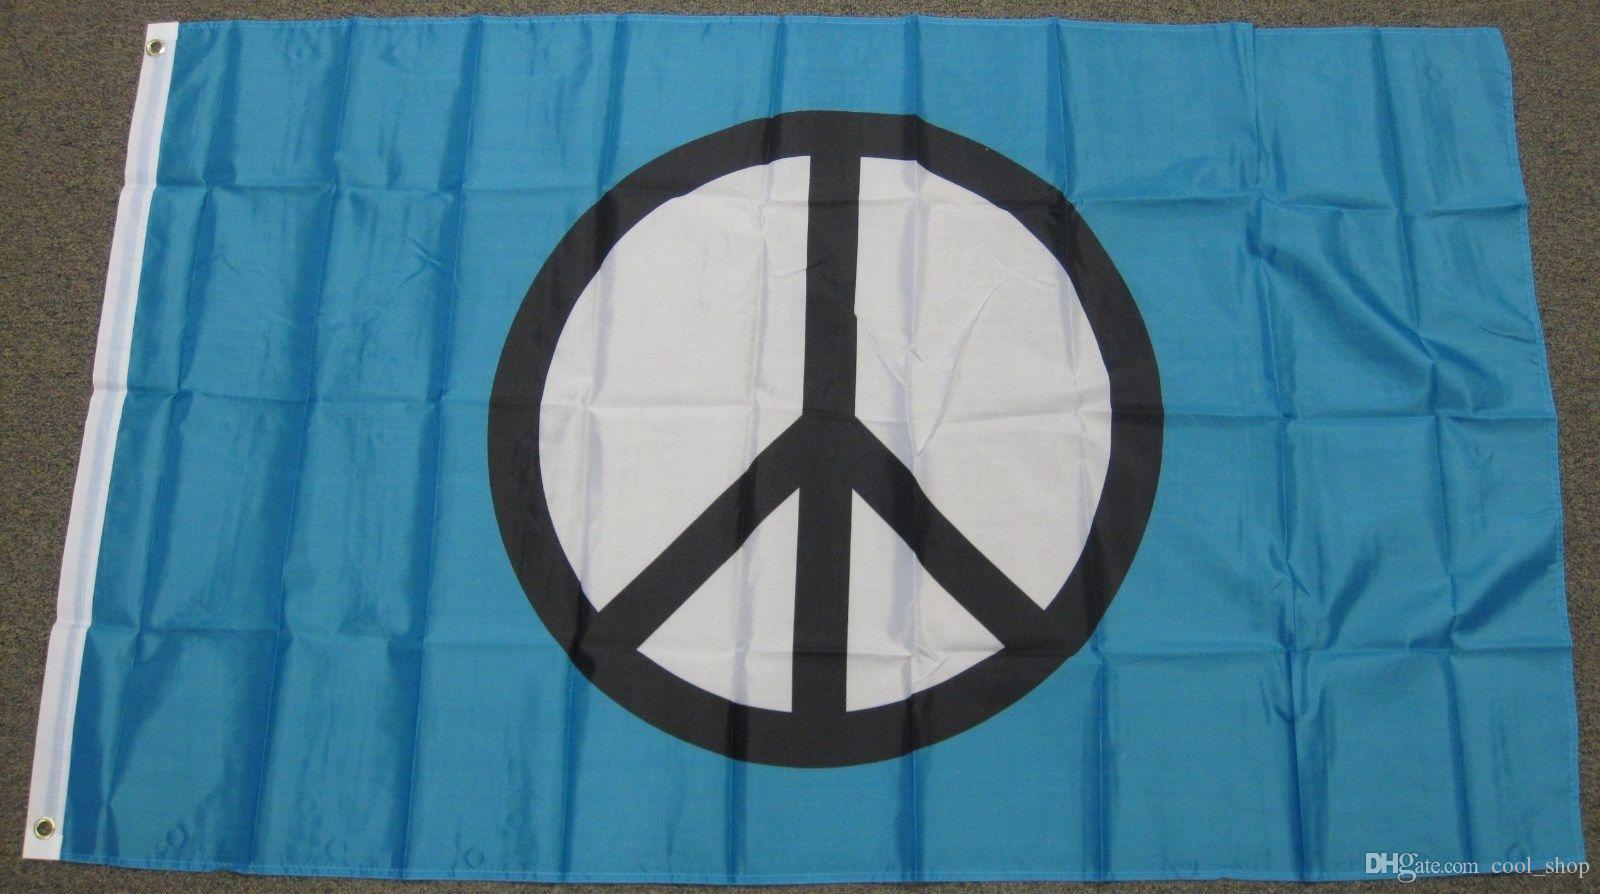 2018 peace sign flag world usa city country banner flag custom 2018 peace sign flag world usa city country banner flag custom football hockey baseball any team house divided flag from coolshop 543 dhgate biocorpaavc